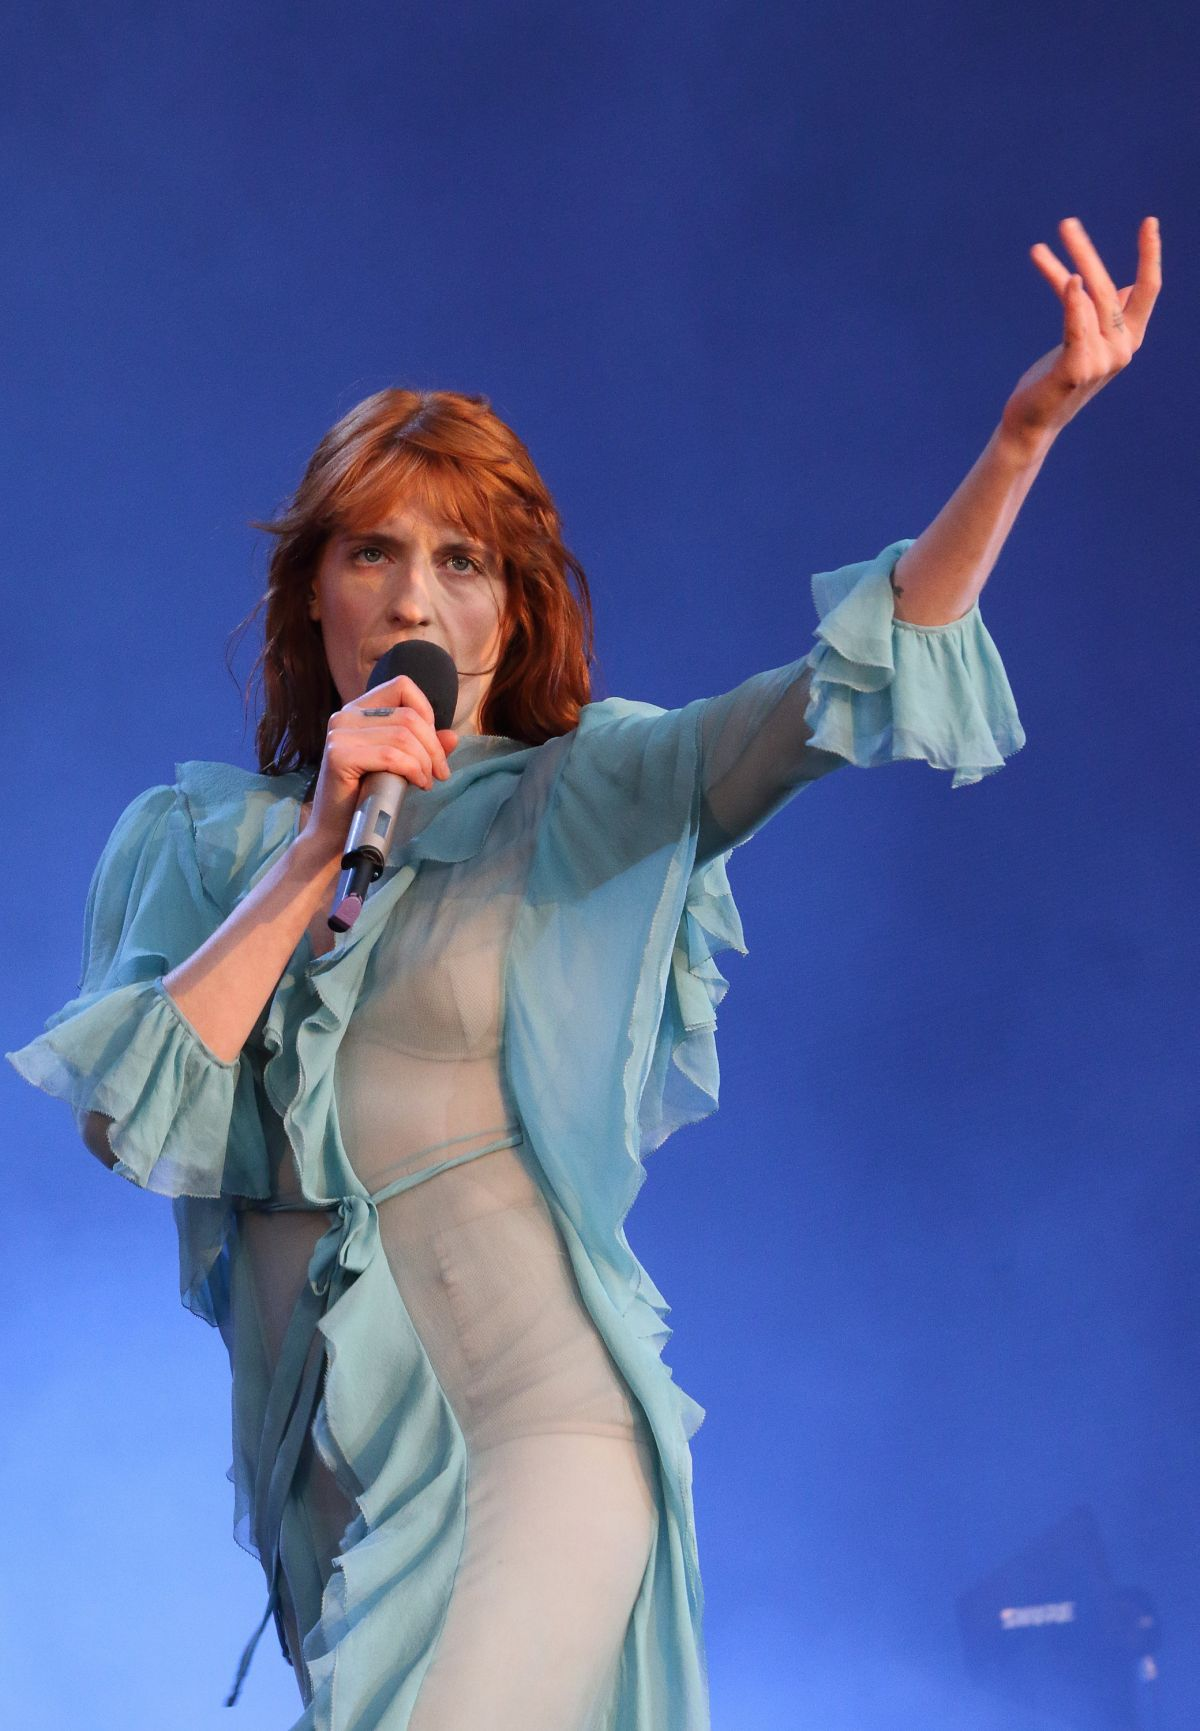 FLORENCE WELCH Performs at British Summertime Festival at Hyde Park in London 07/02/2016